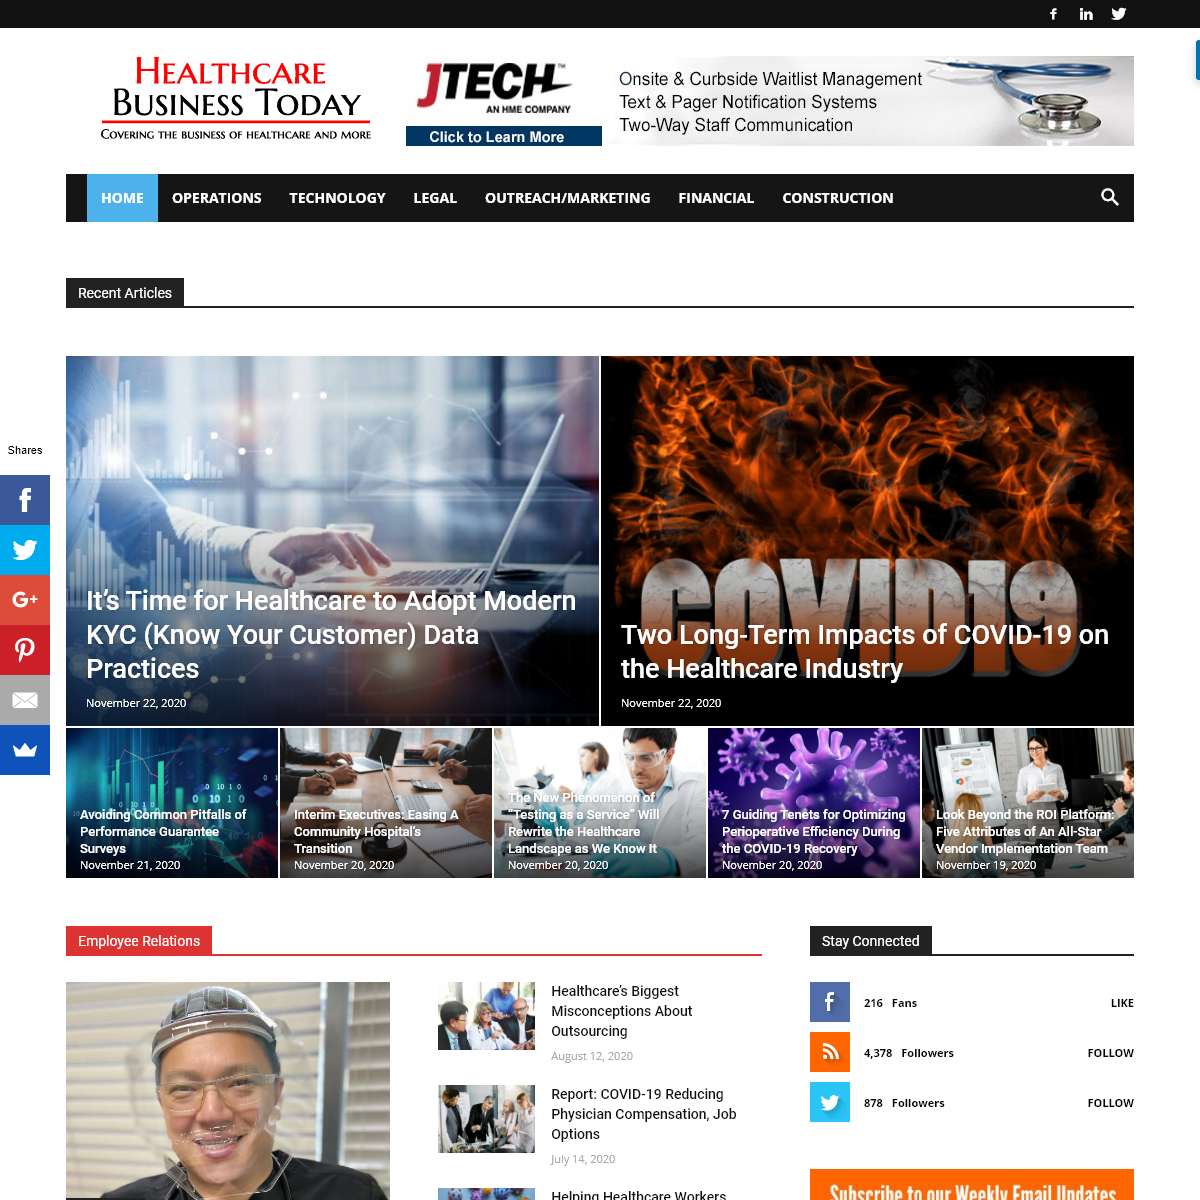 Home Page - Healthcare Business Today